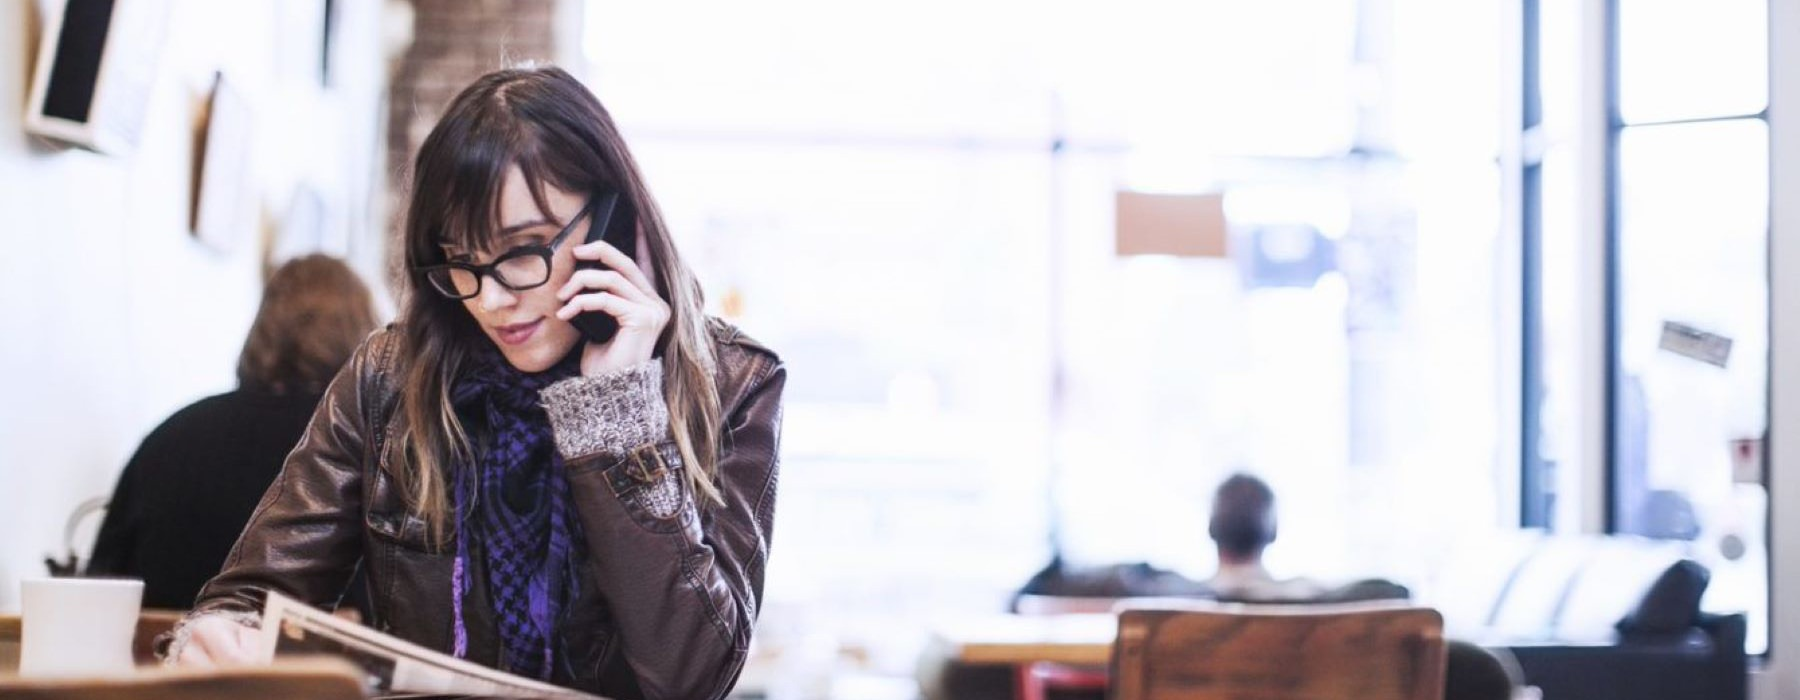 smartly dressed young woman on a phone, looking at a menu in neighborhood cafe